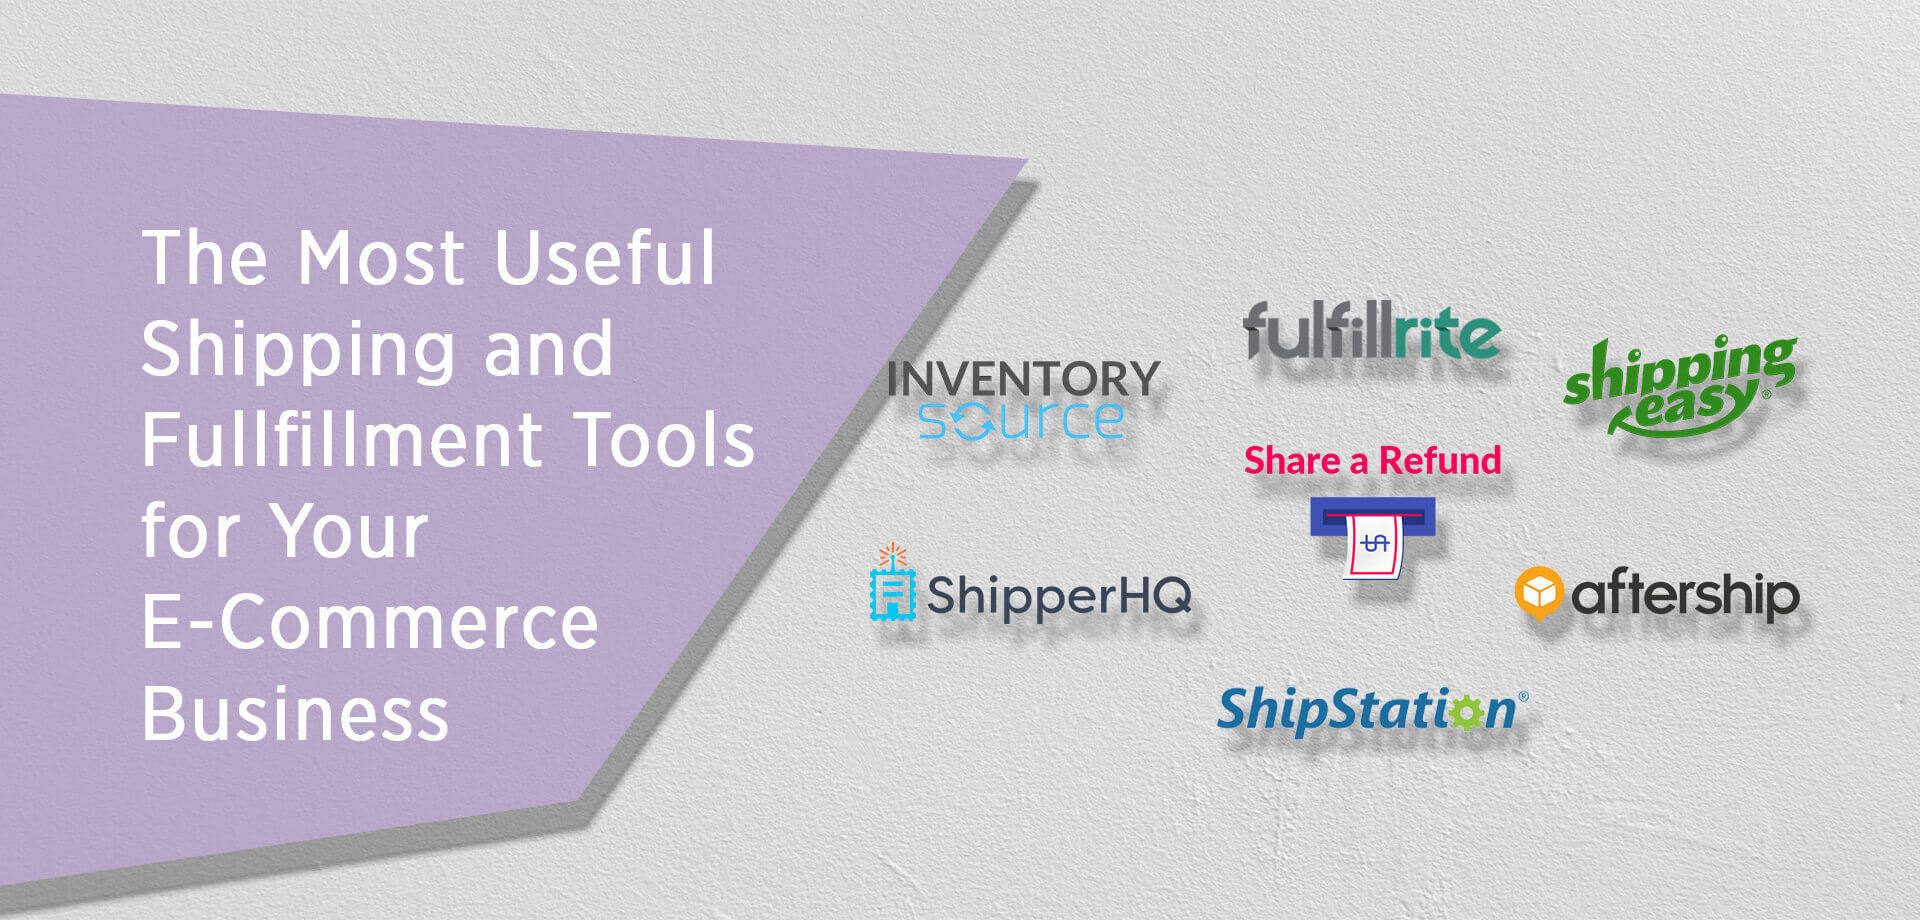 The Most Useful Shipping and Fullfillment Tools